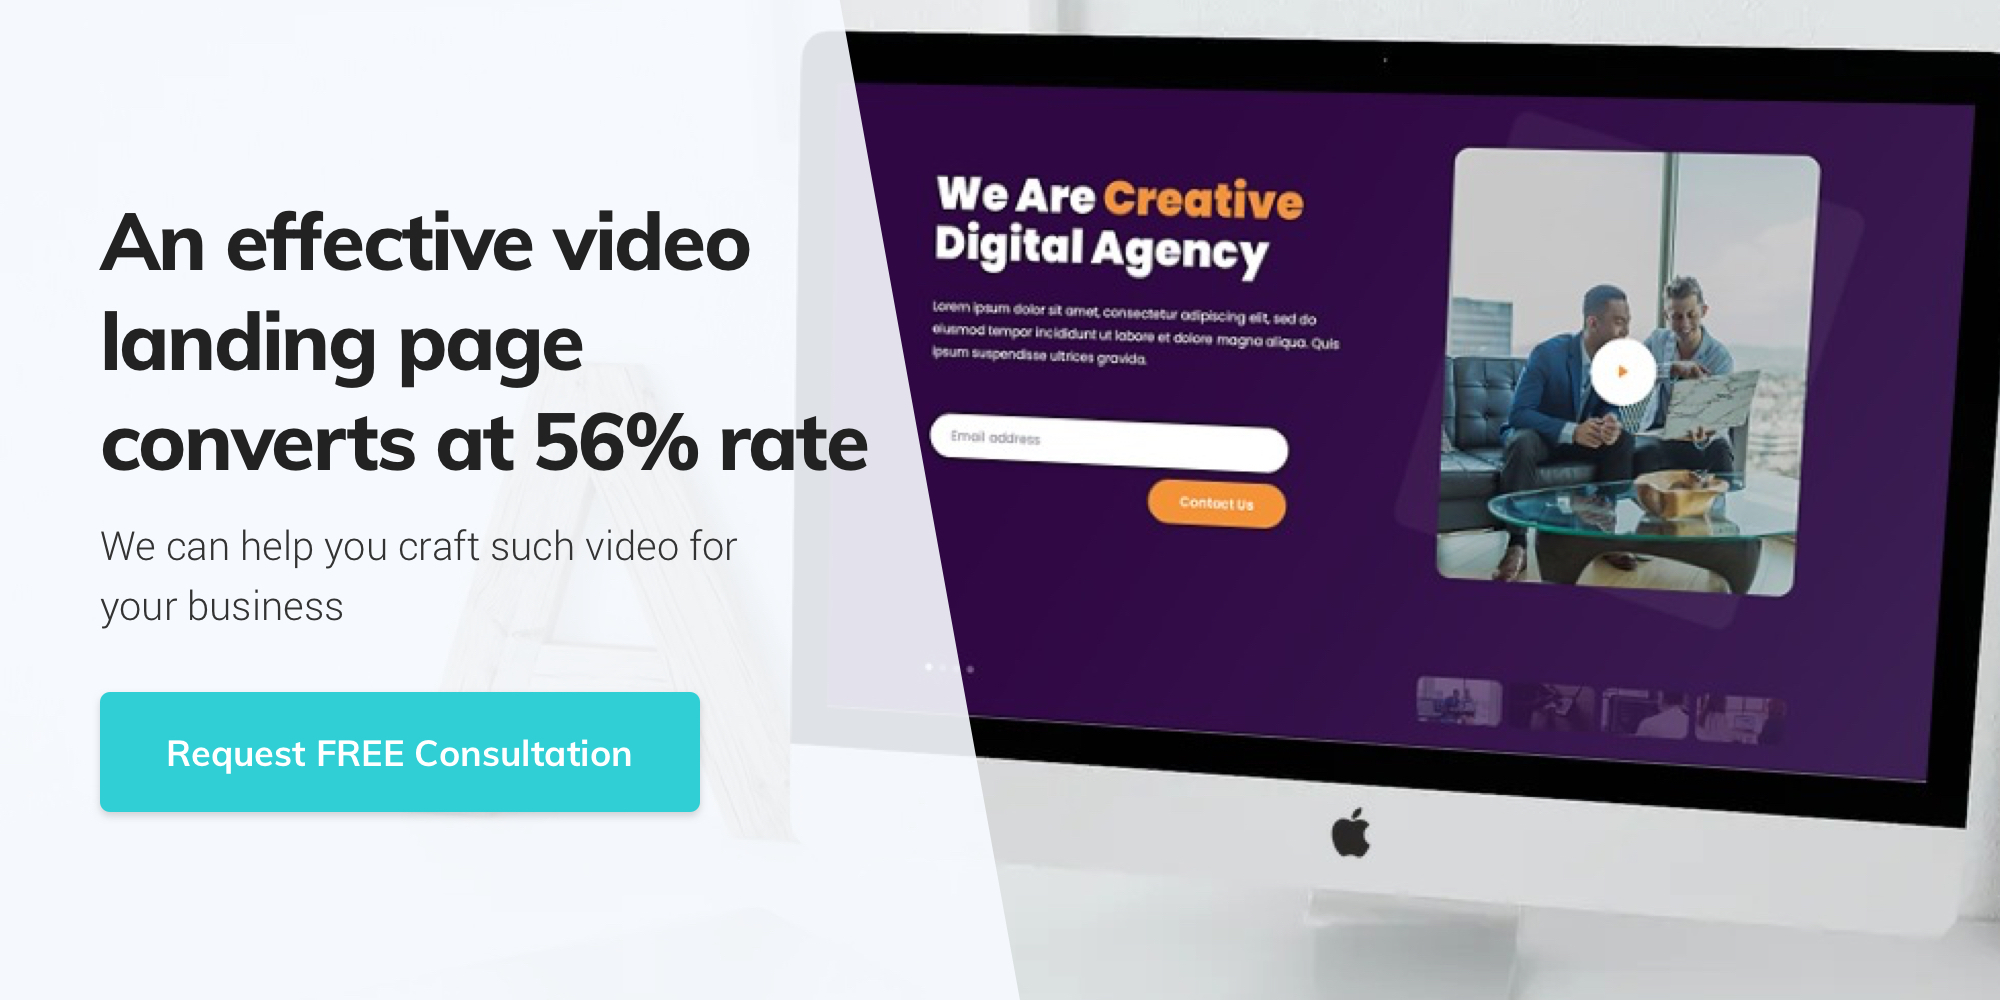 Contact Giant Panda Studio to build video landing page that converts